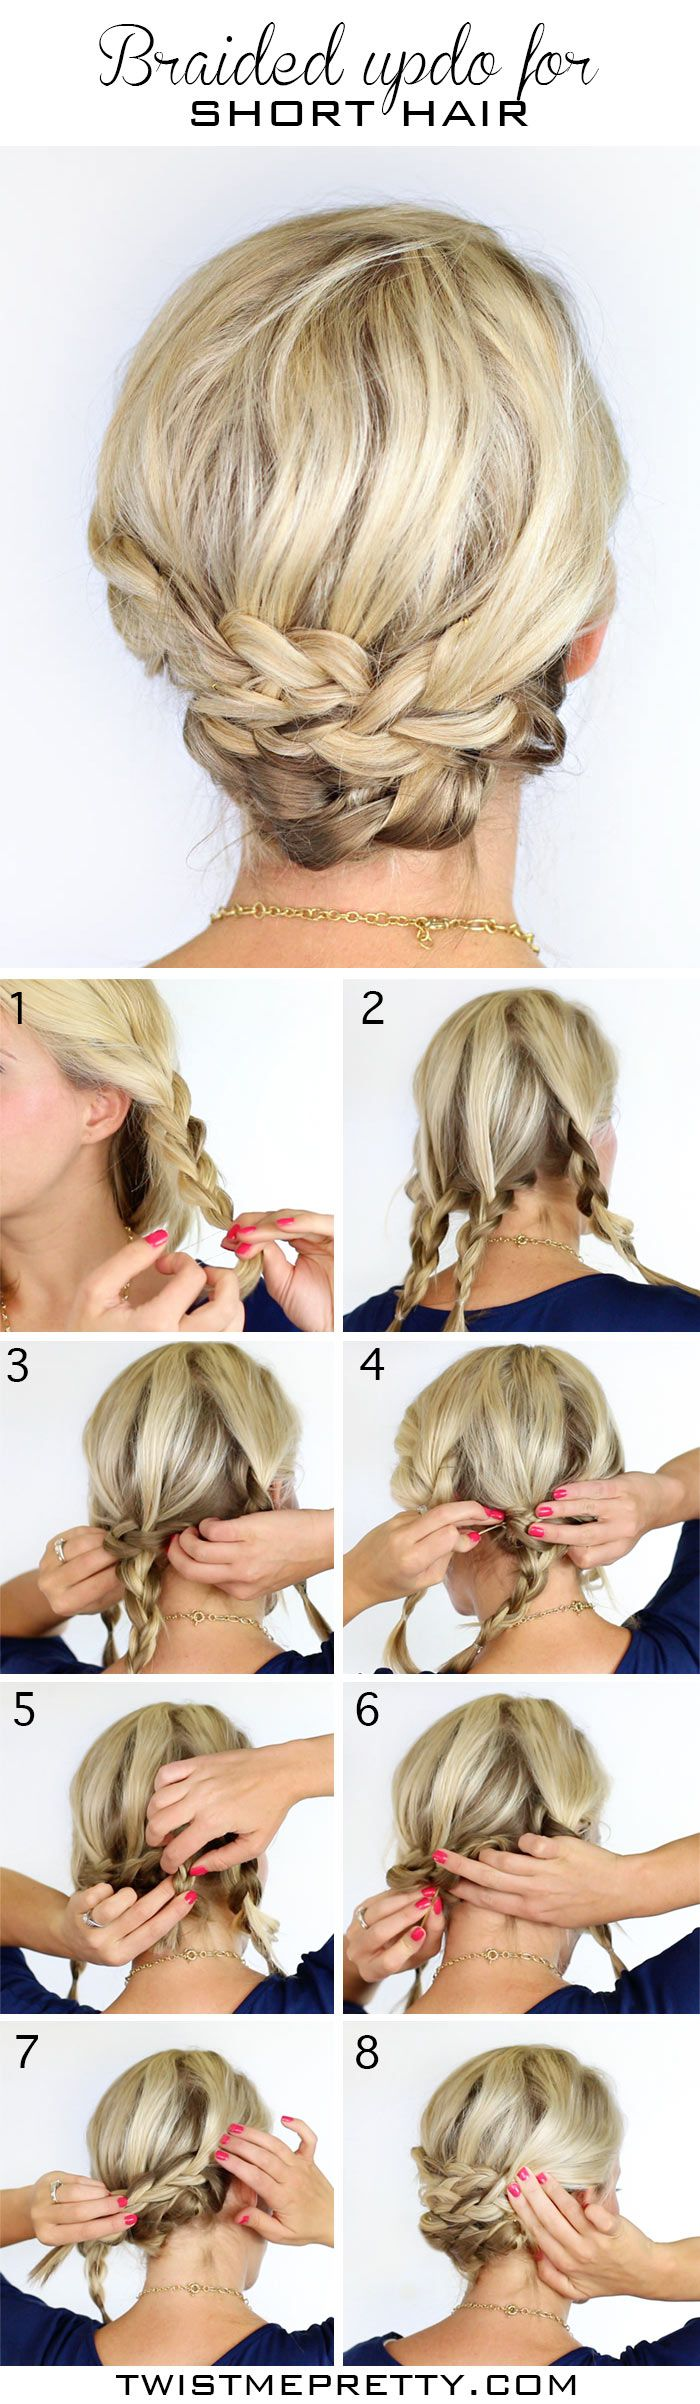 The blogger behind this pretty braided style says it's for short hair, but...